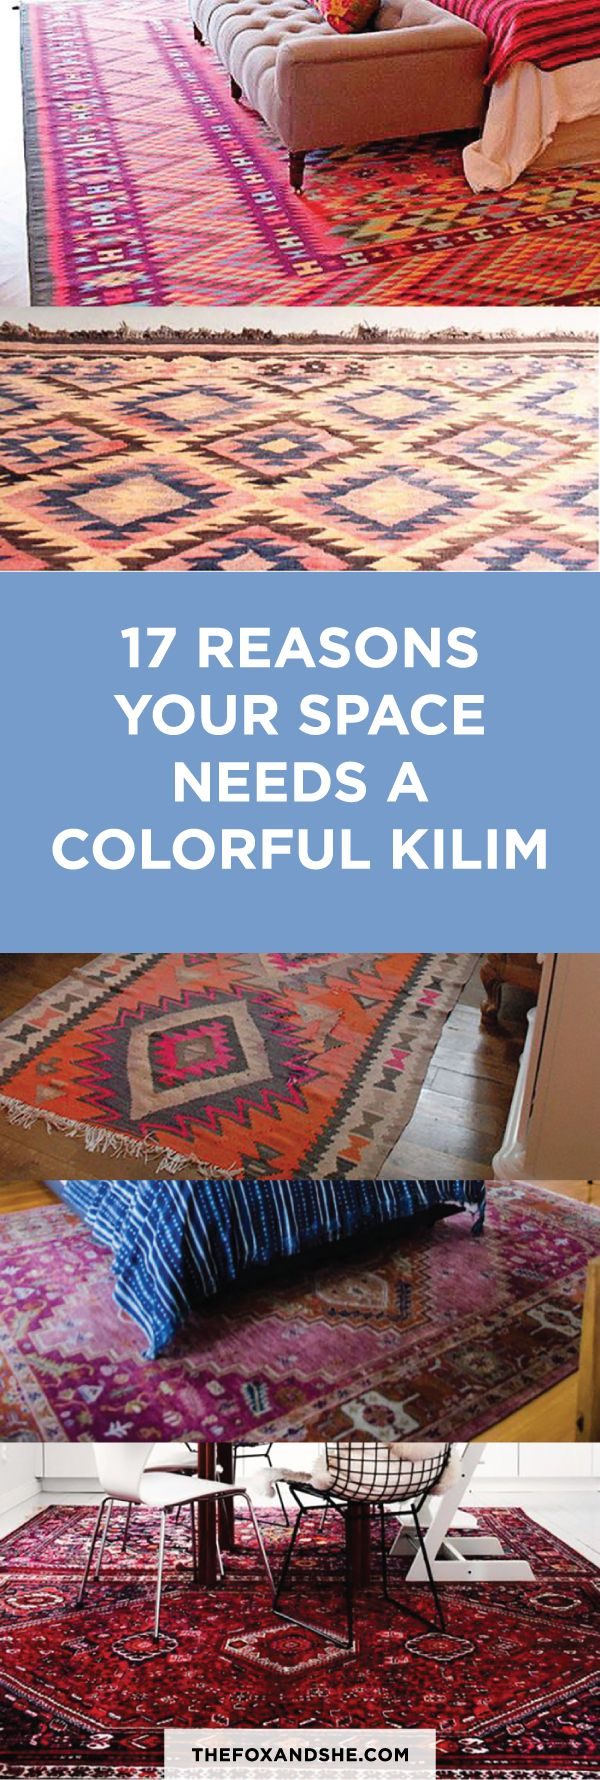 Kilim Rugs for Your Living Room! thefoxandshe.com